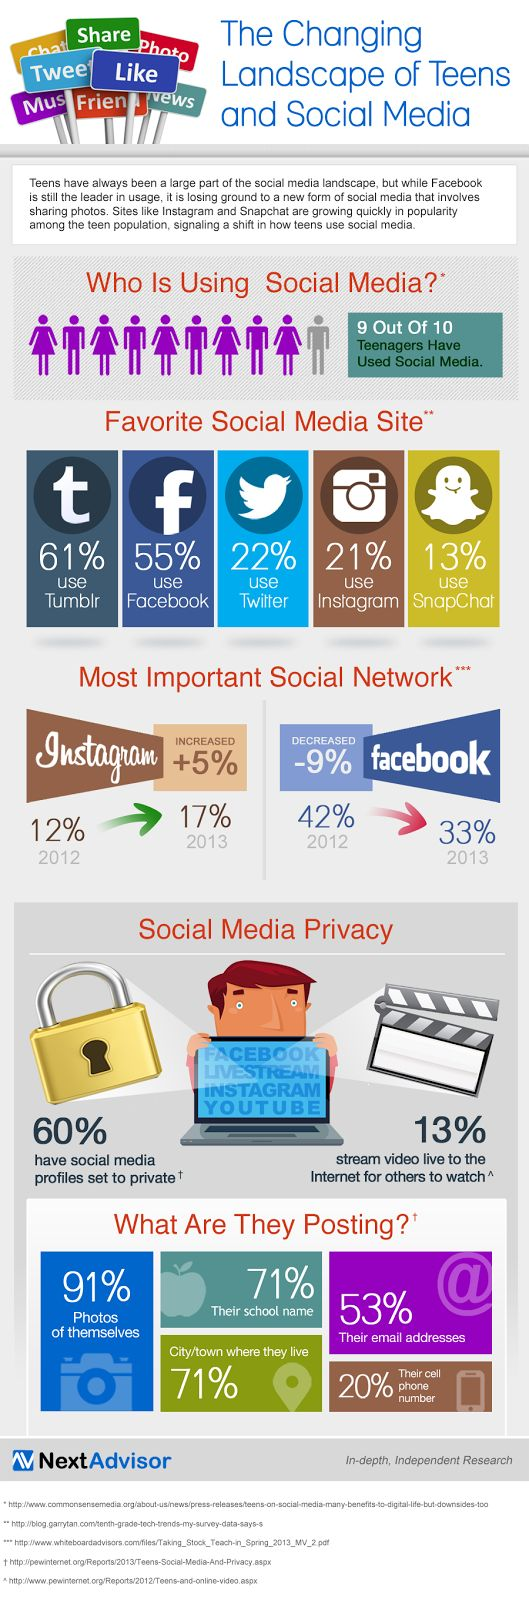 The Changing Landscape of Teens and Social Media